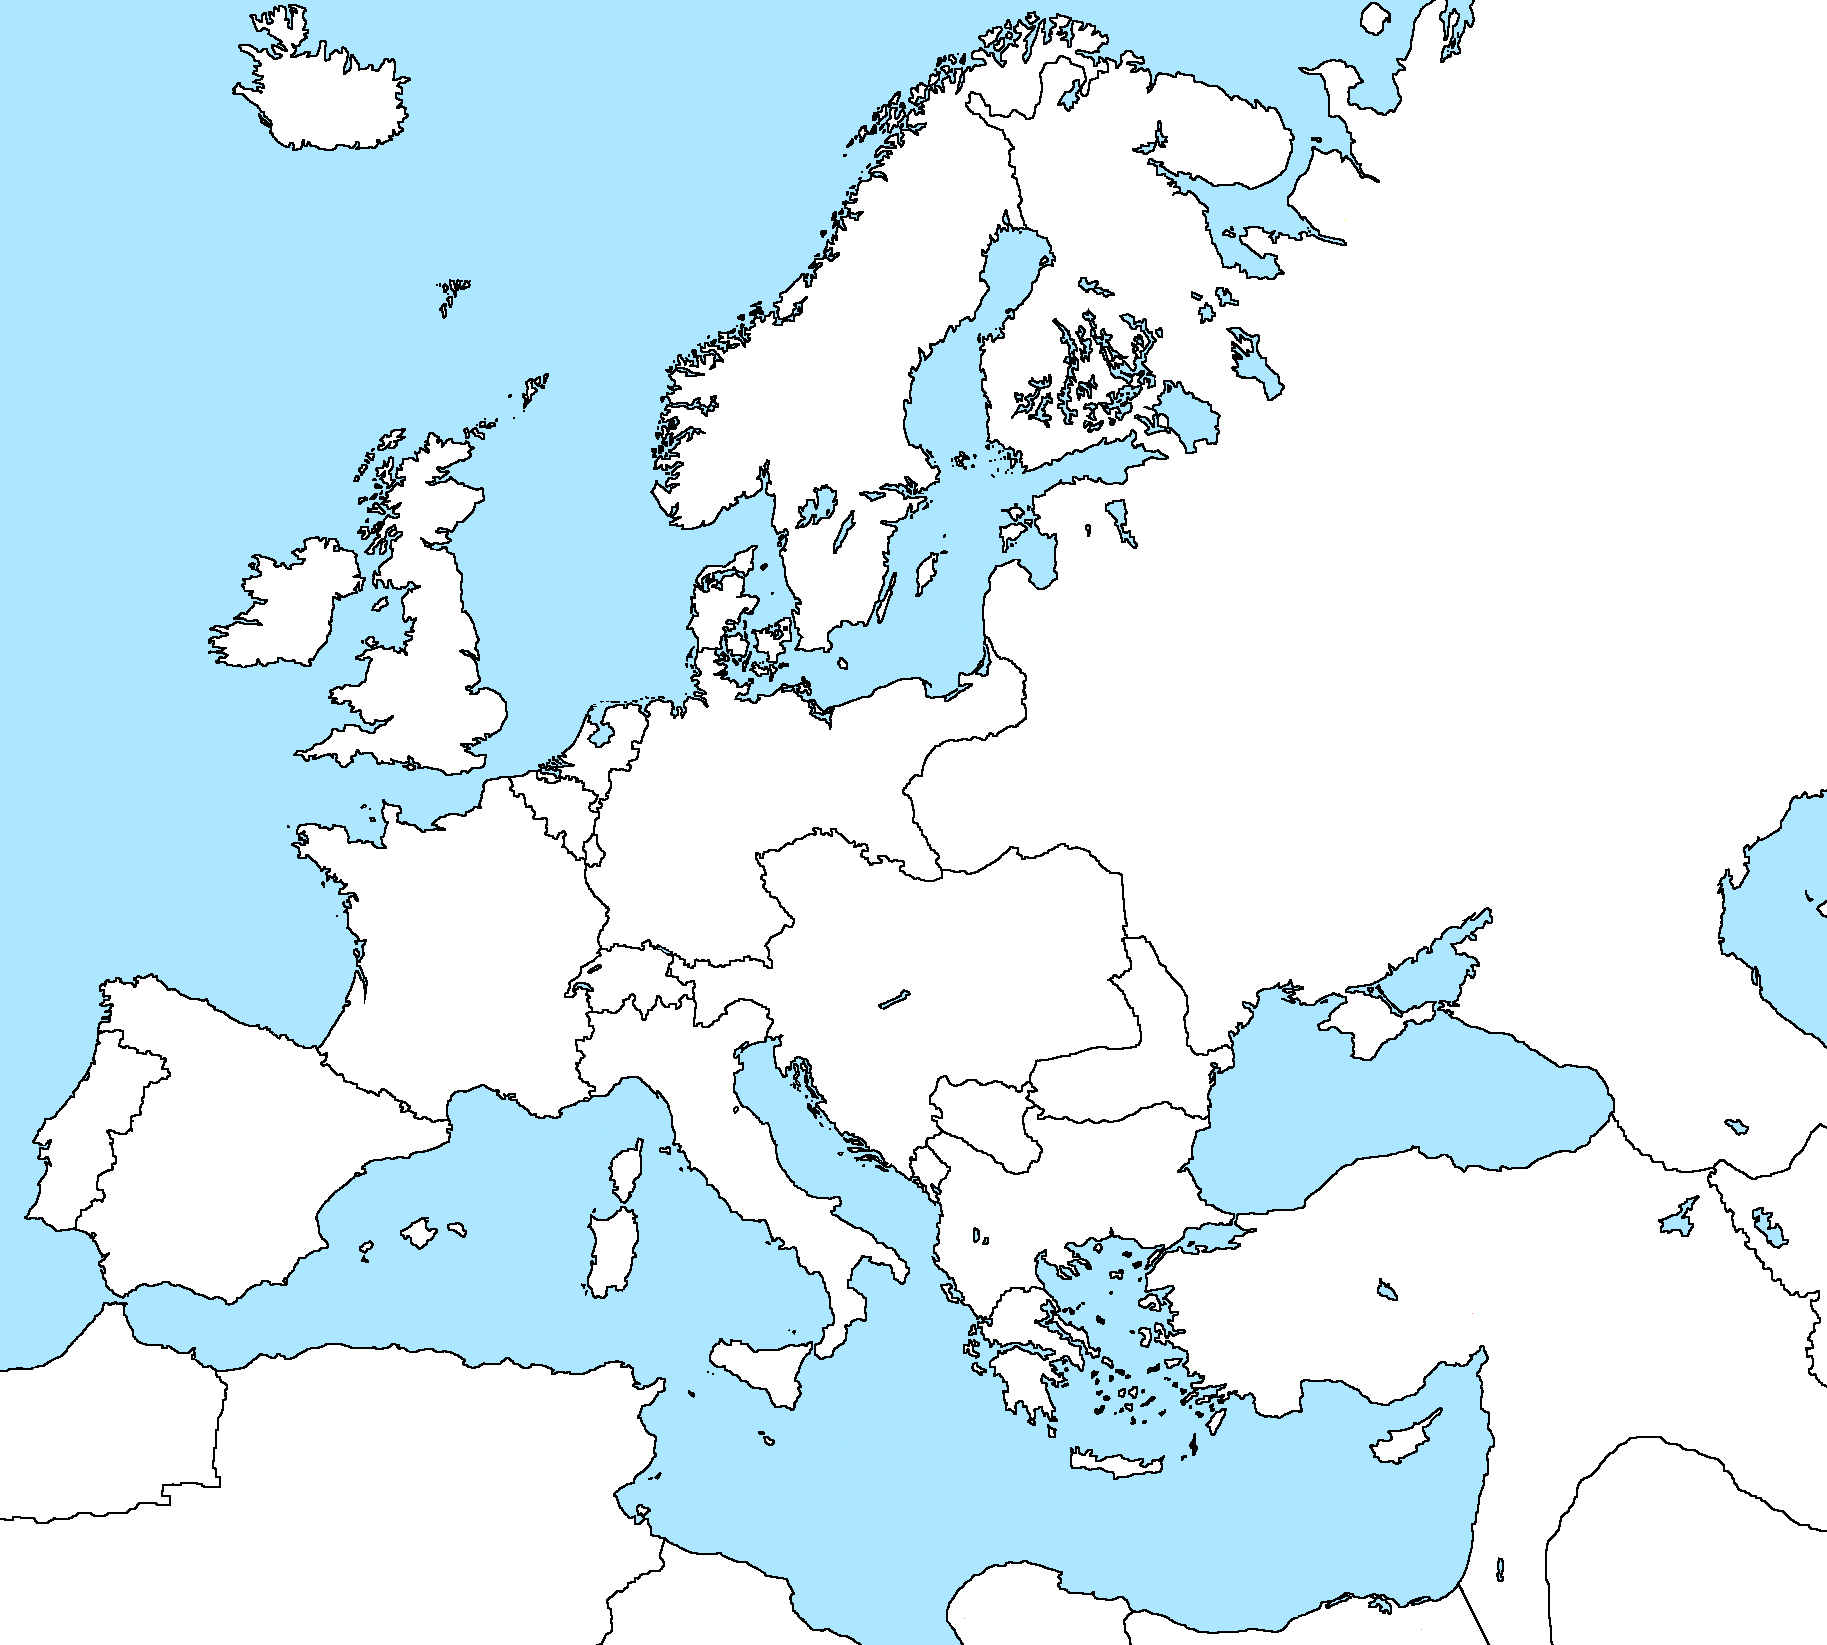 Blank Map Of Europe 1900 By Xgeograd On Deviantart